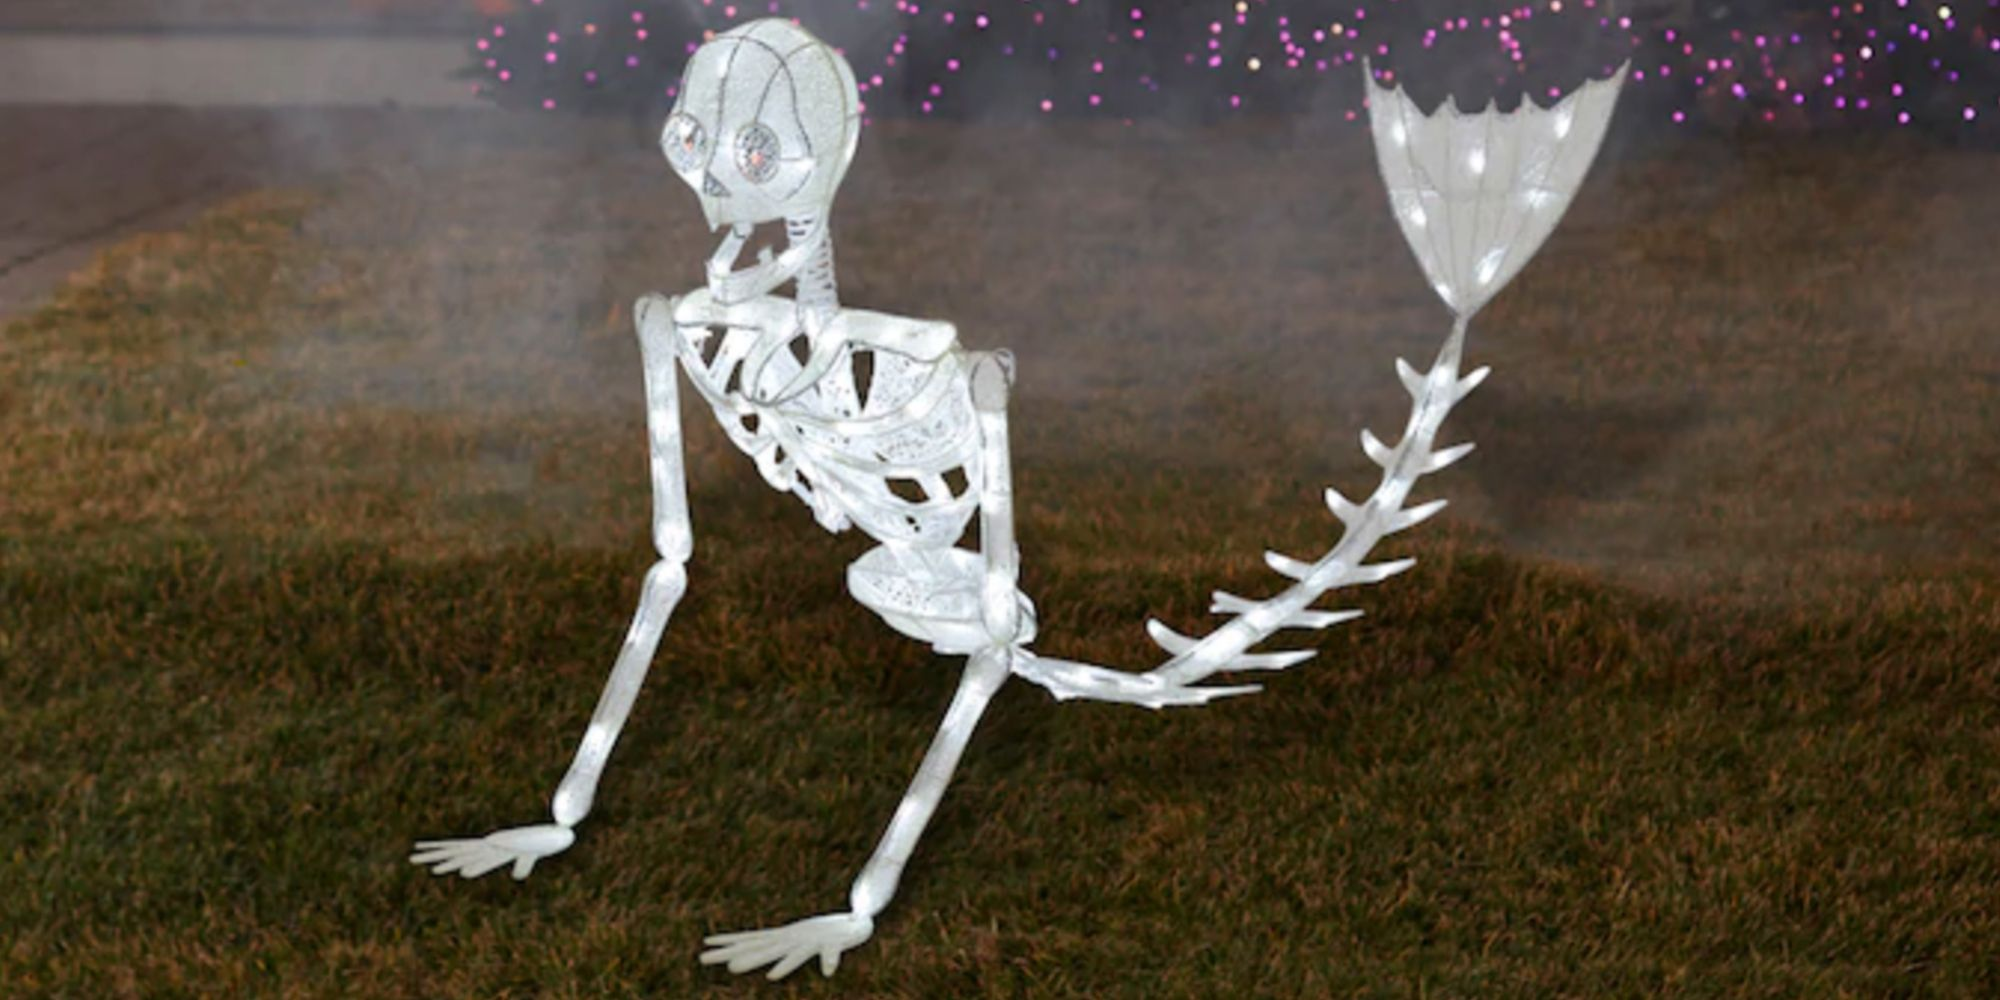 This 5 Foot Glittery Mermaid Skeleton Will Light Up Your Lawn With Under The Sea Vibes